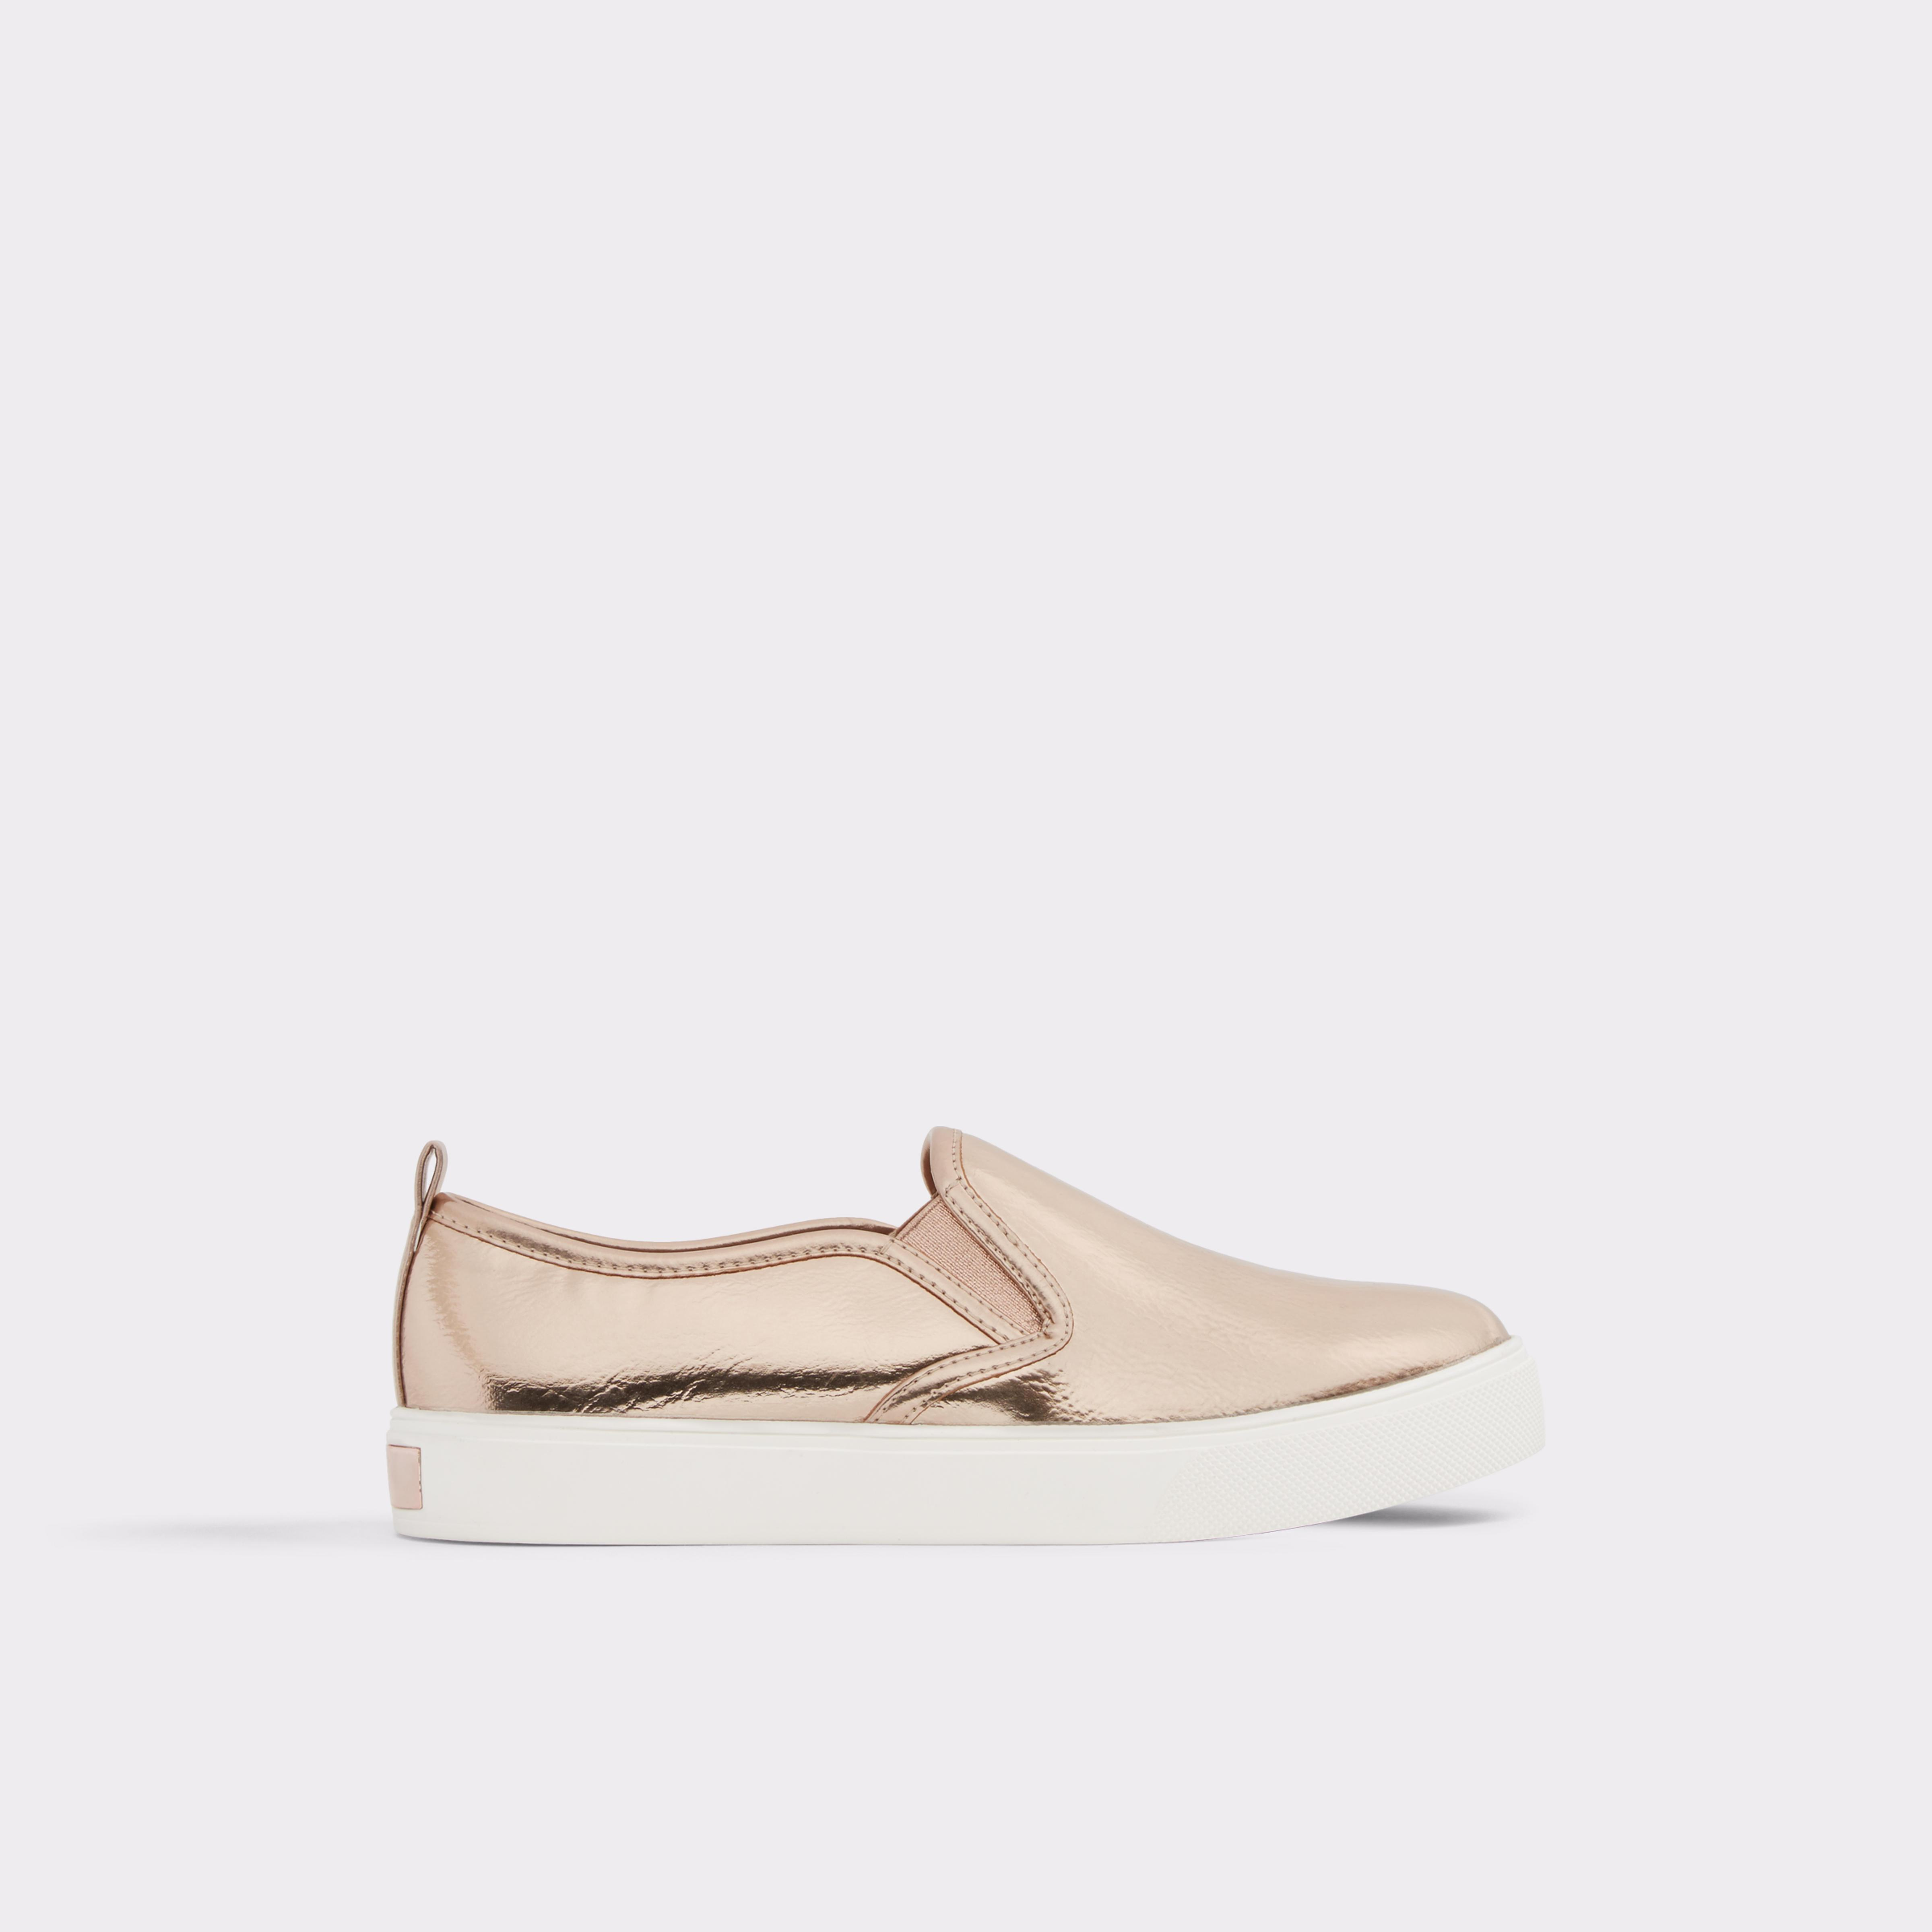 ALDO 2750 Cotu Metallic - Women's cheapest price cheap online outlet big discount outlet fast delivery me7C81